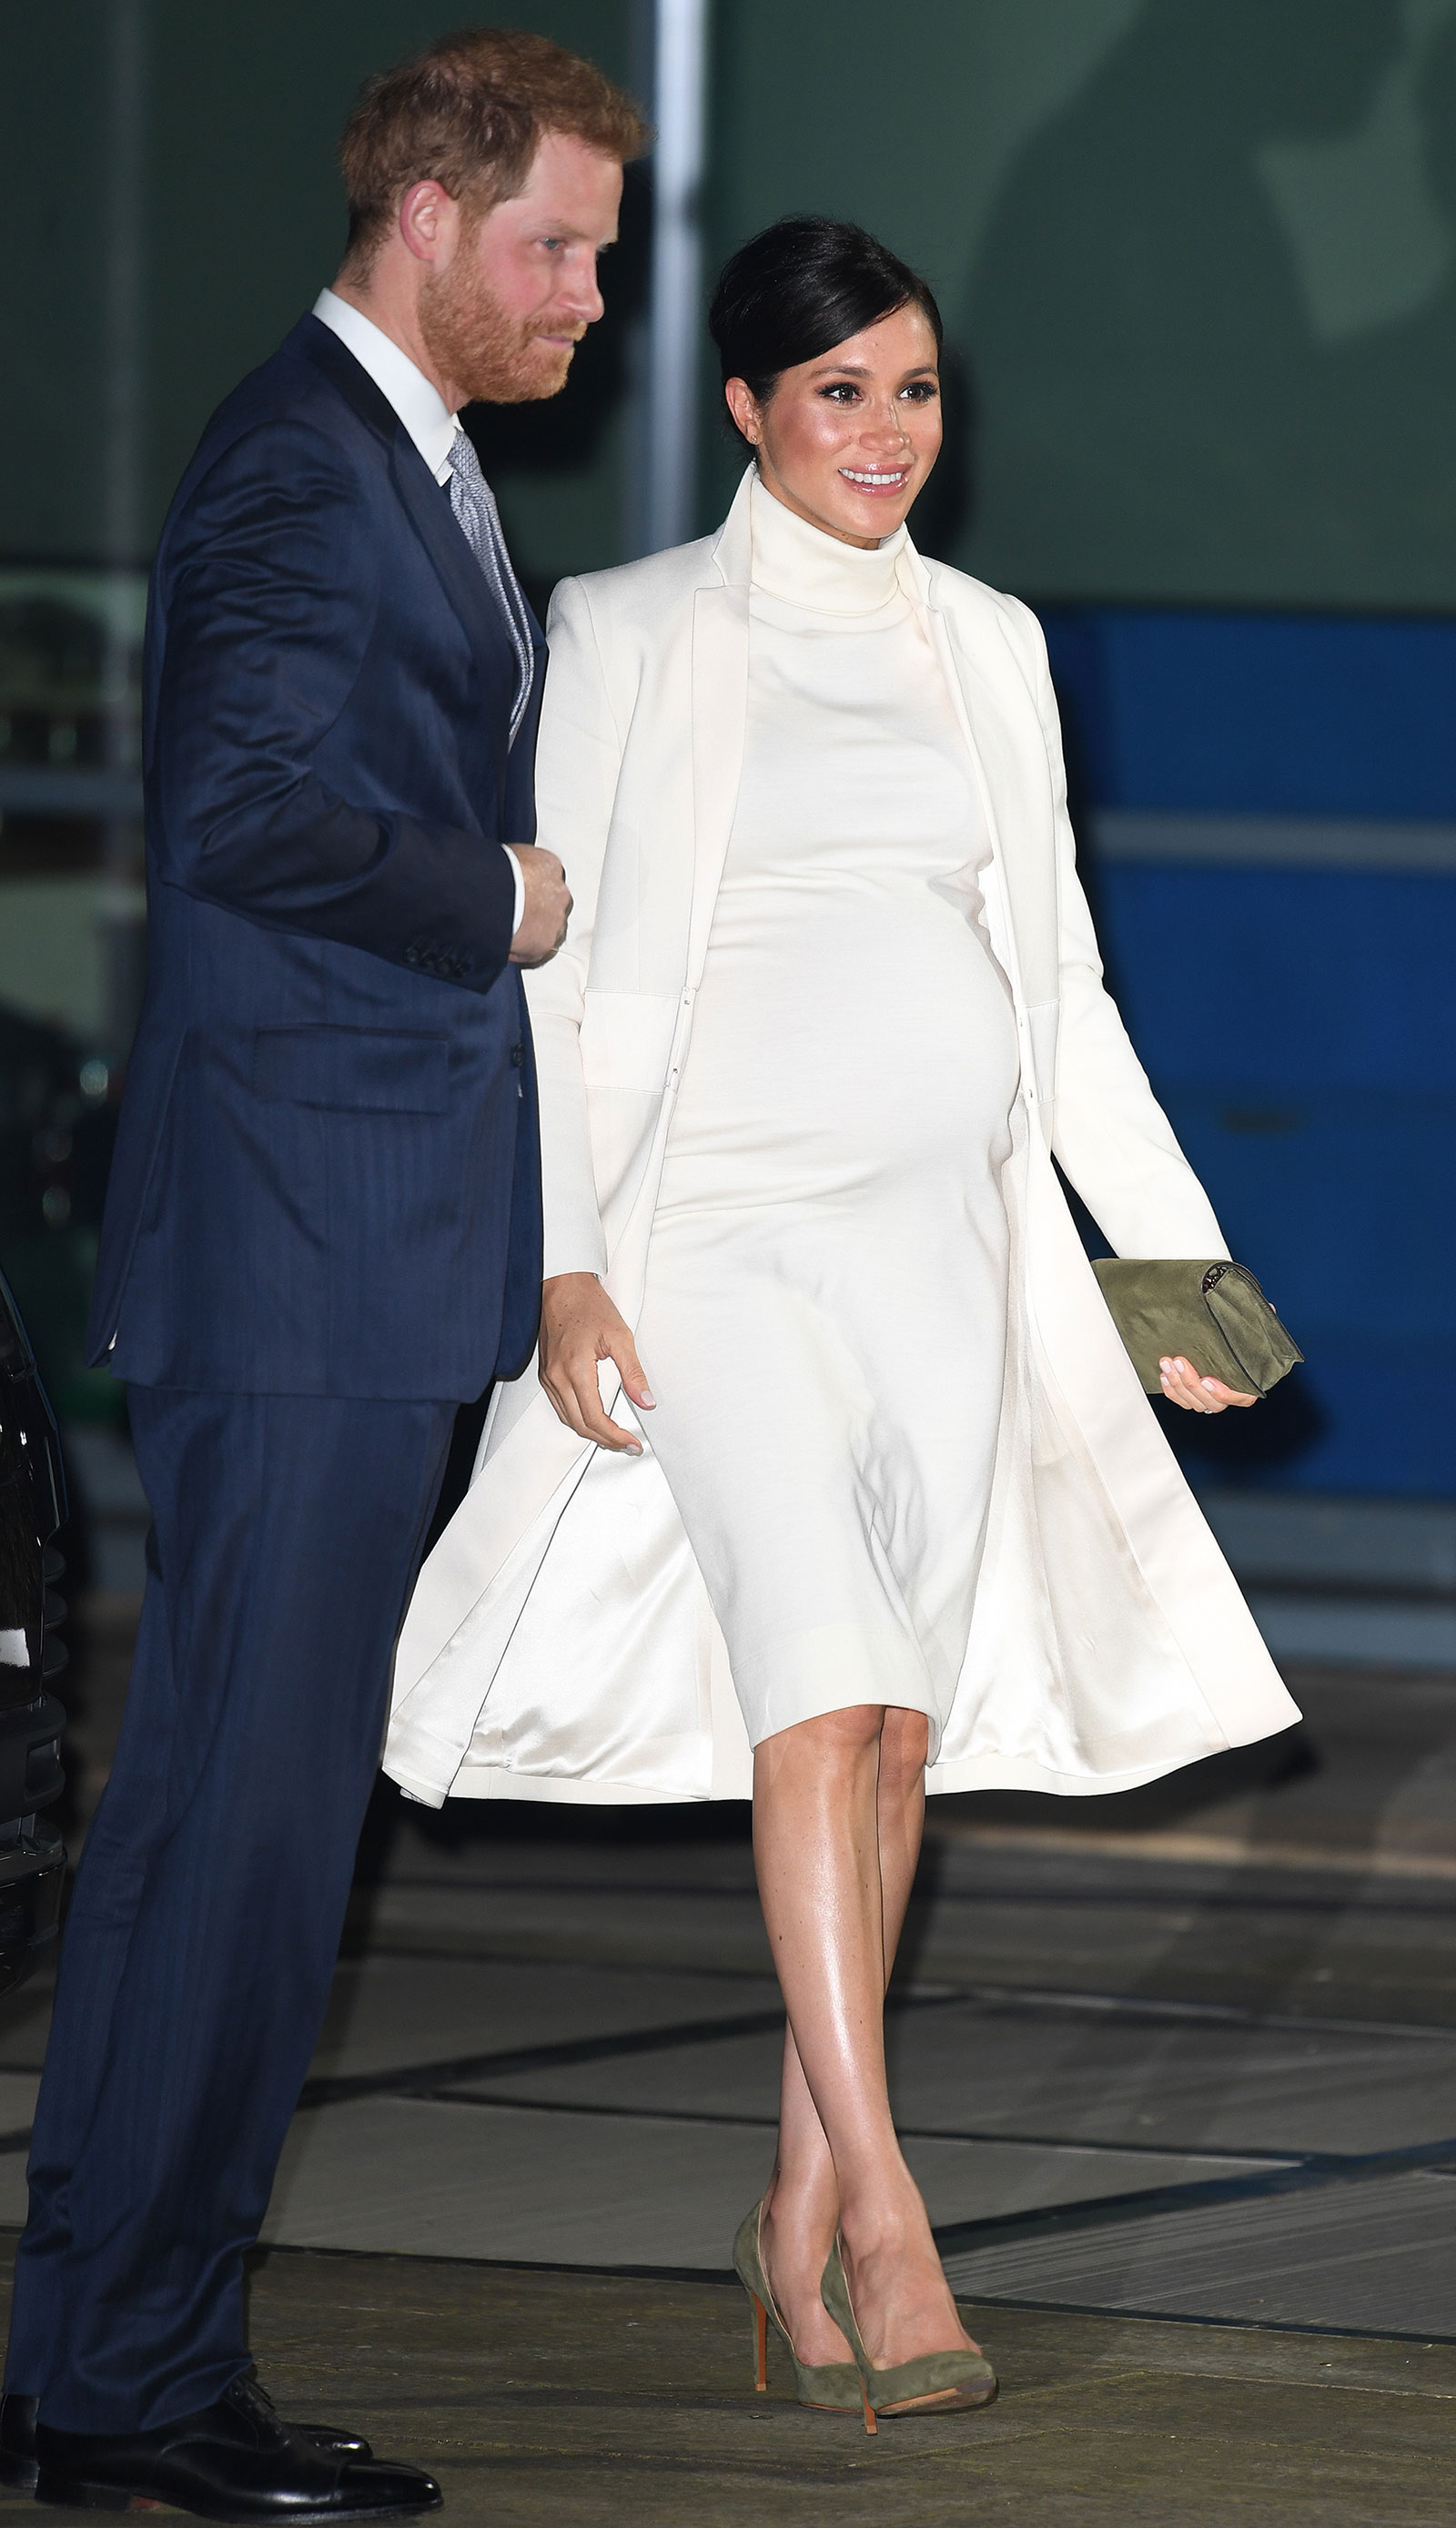 Meghan Markle s White Turtleneck Dress Look for Less - The Budget ... c38fa65c58a5